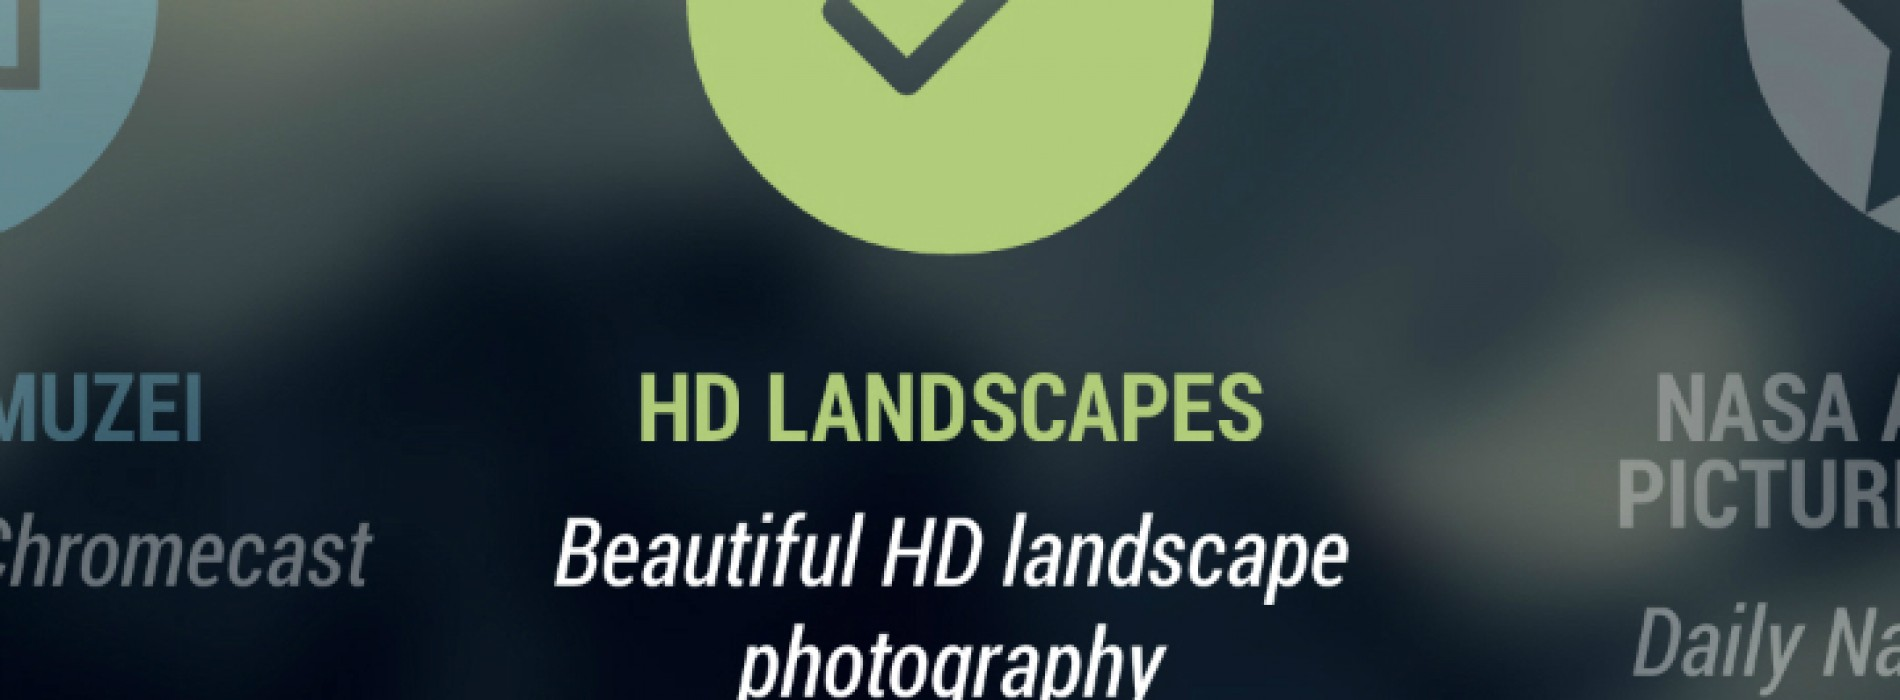 Muzei HD Landscapes sets beautiful landscapes as your wallpaper through Muzei [App of the Day]